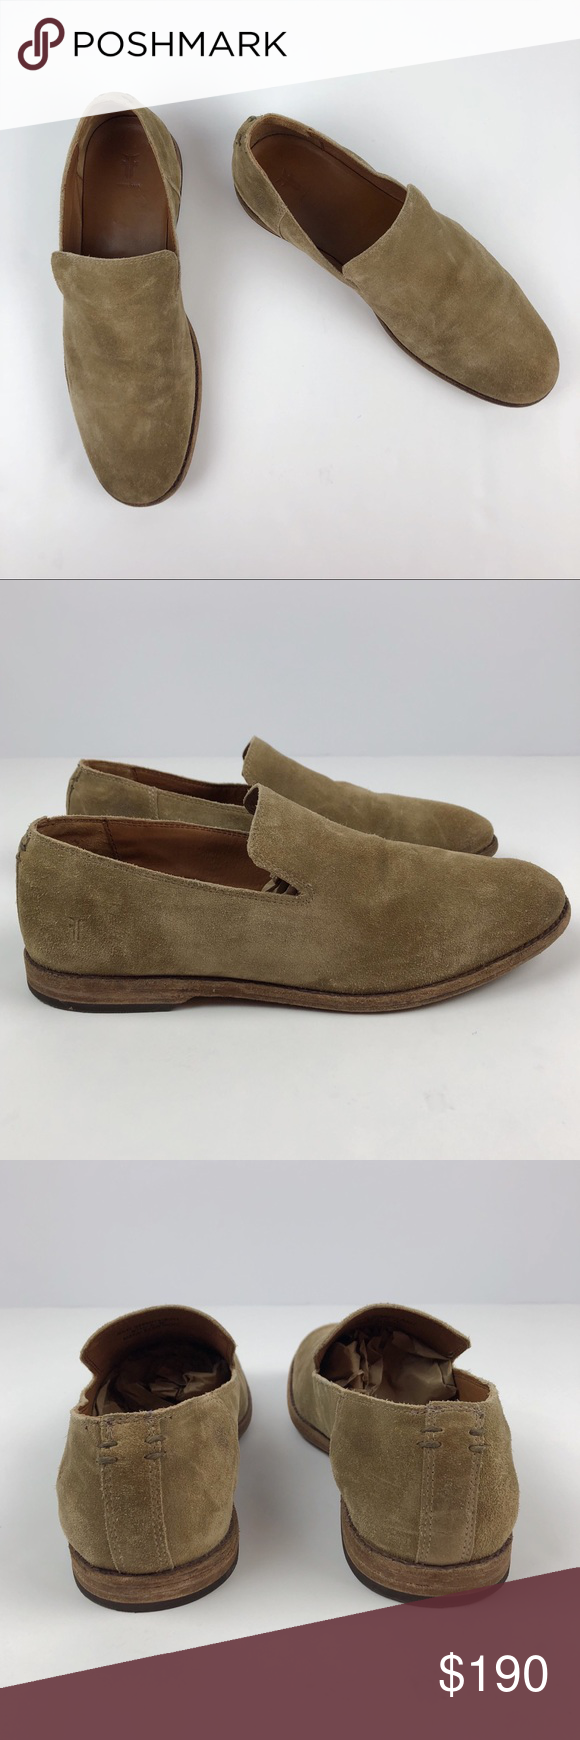 f5e8d3ce0aa Frye Men s Chris Venetian Suede Loafers - Ash •in great gently used  condition •leather